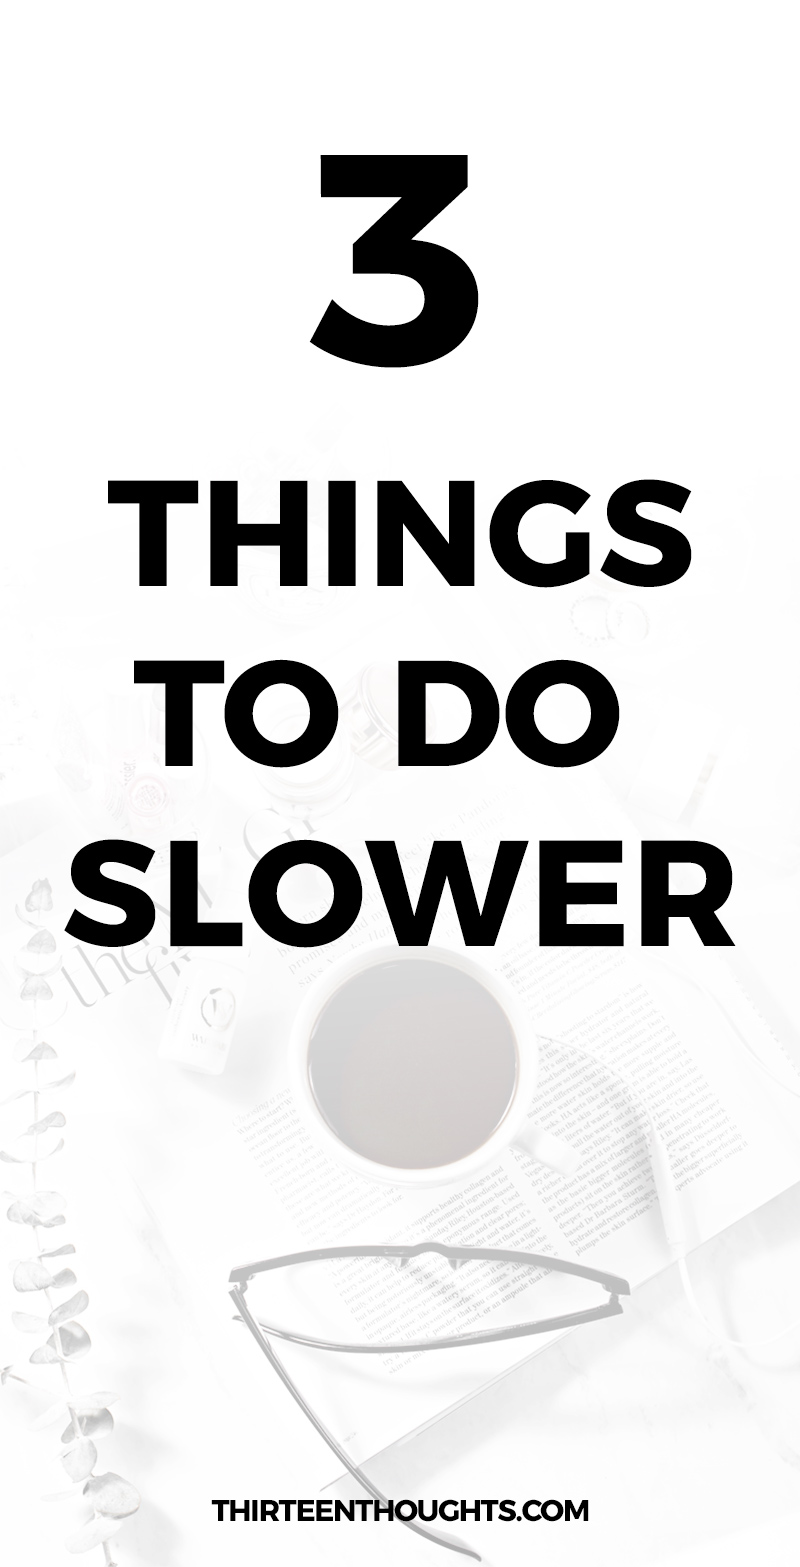 3 Things To Do Slower